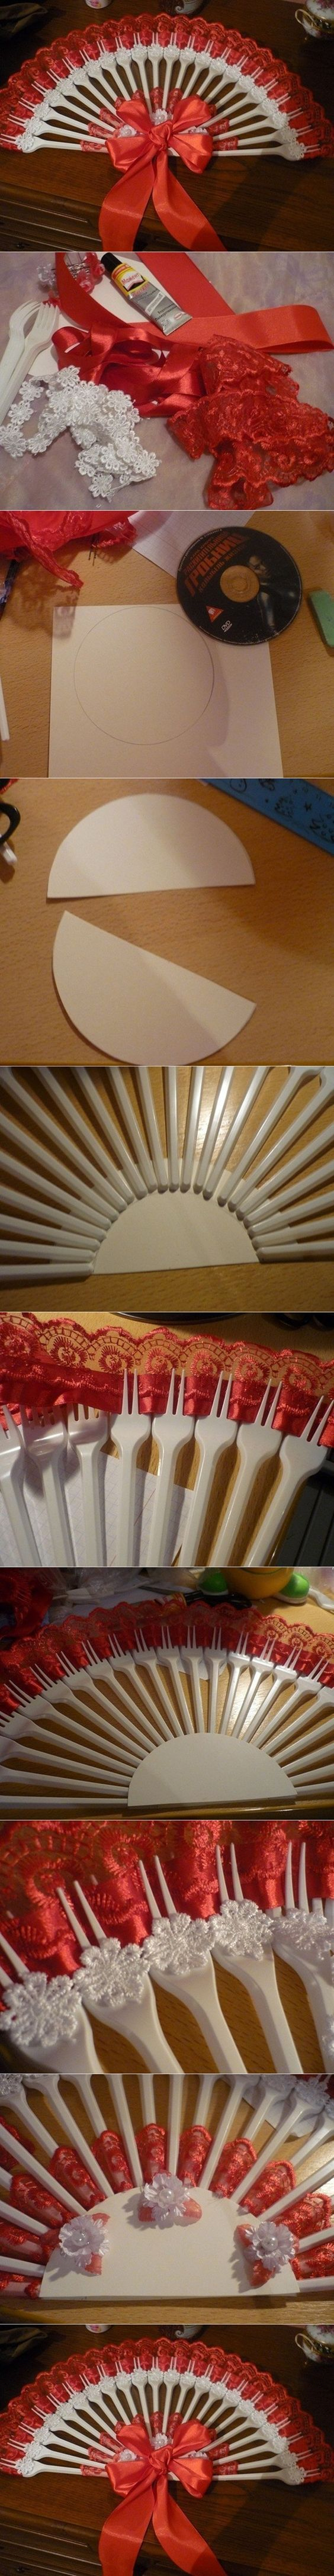 Handcrafted with step-by-step plastic fork